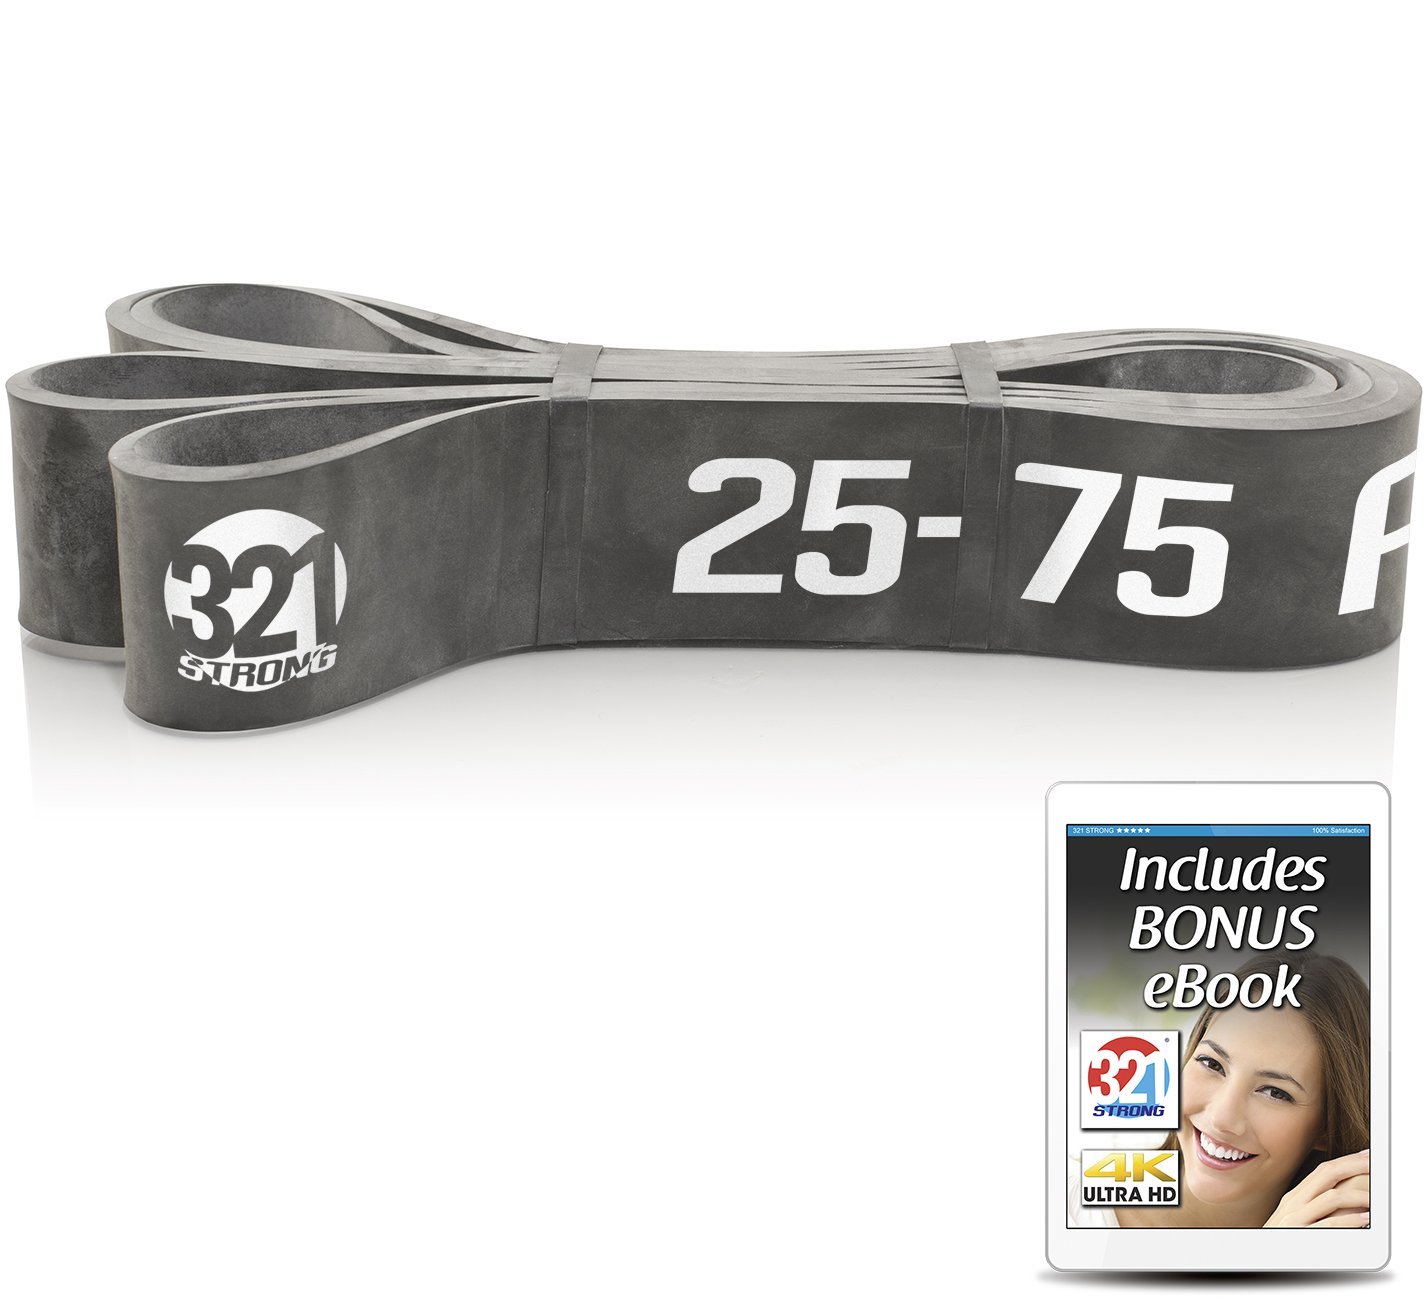 321 STRONG Exercise Resistance Bands - Level 5 by 321 STRONG (Image #1)